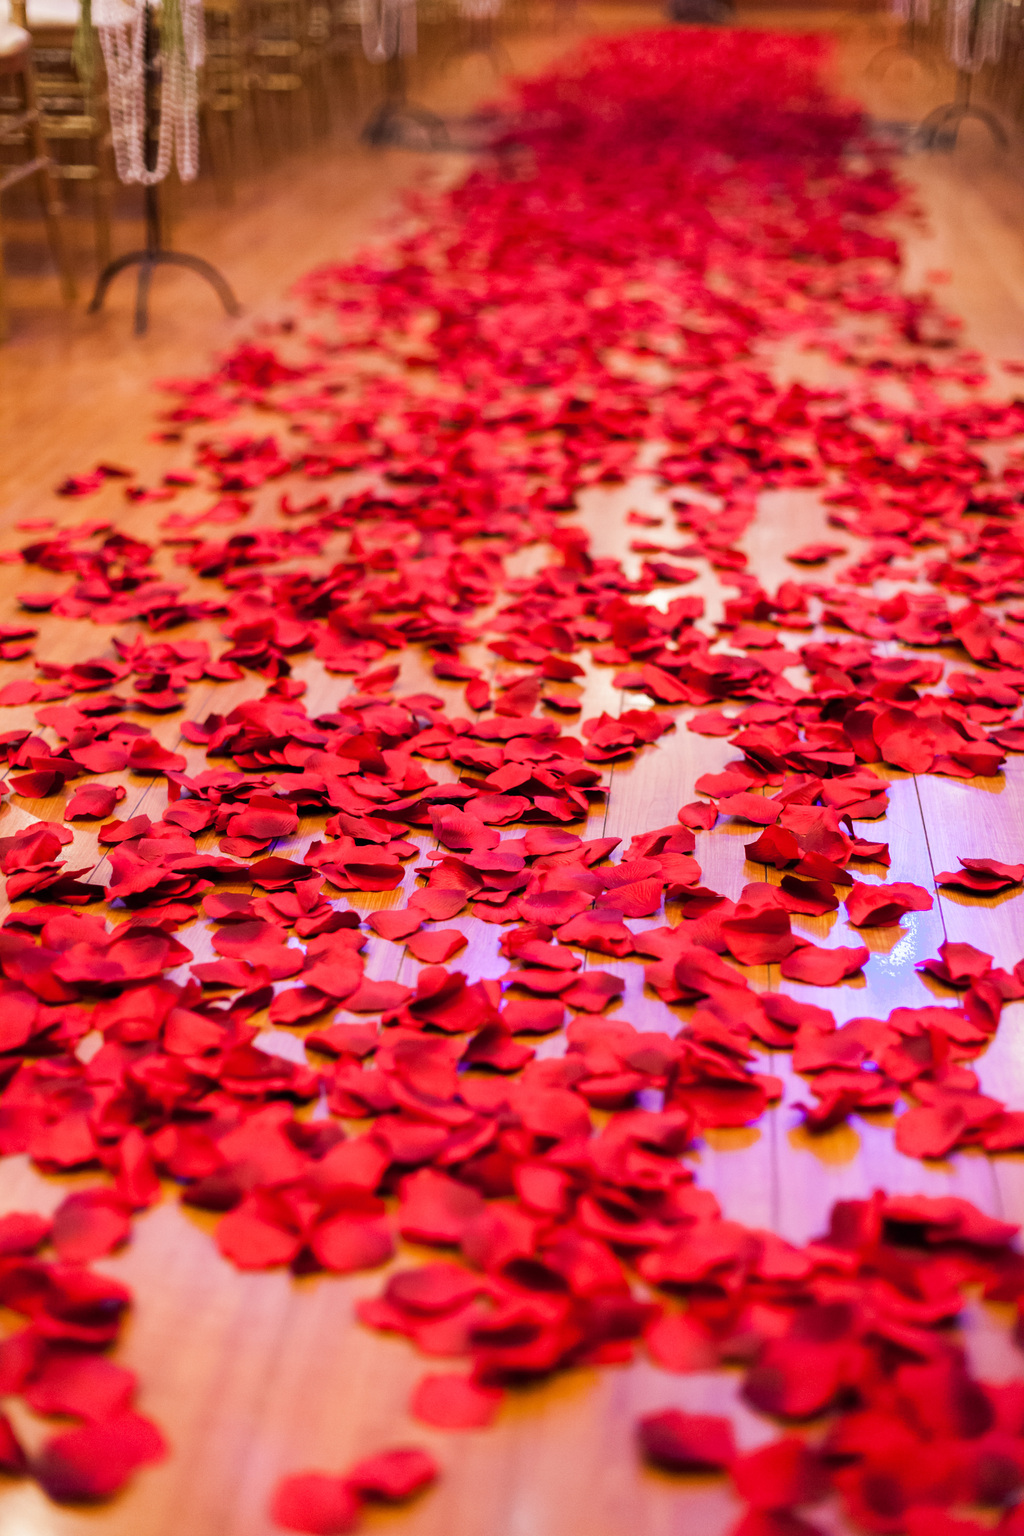 Epic-wedding-in-los-angeles-california-weddings-red-rose-petal-covered-ceremony-aisle.full